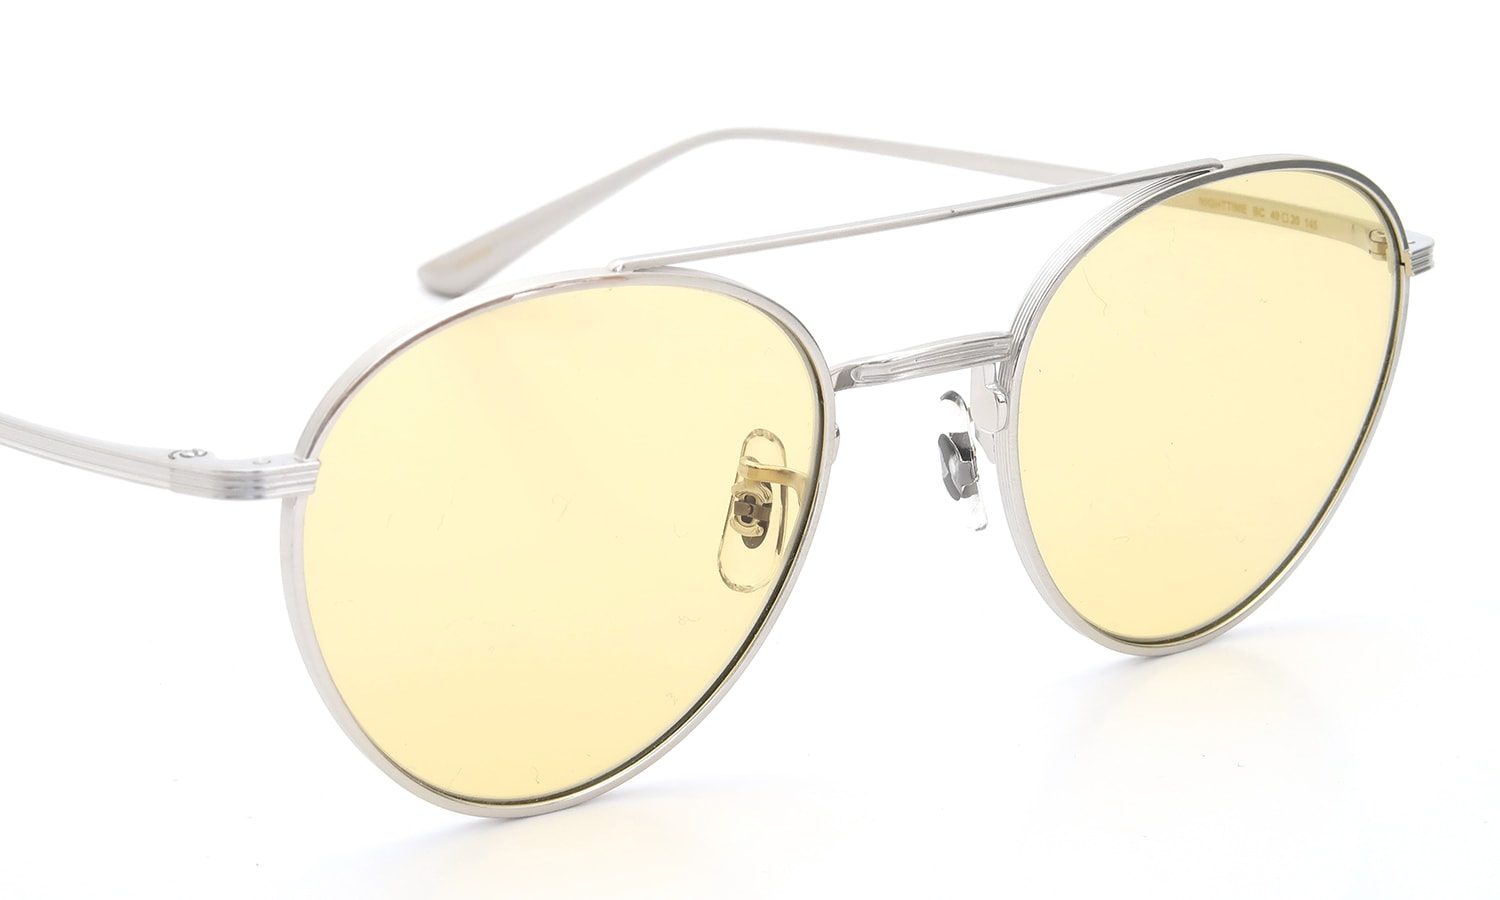 OLIVER PEOPLES×THE ROW NIGHTTIME BC